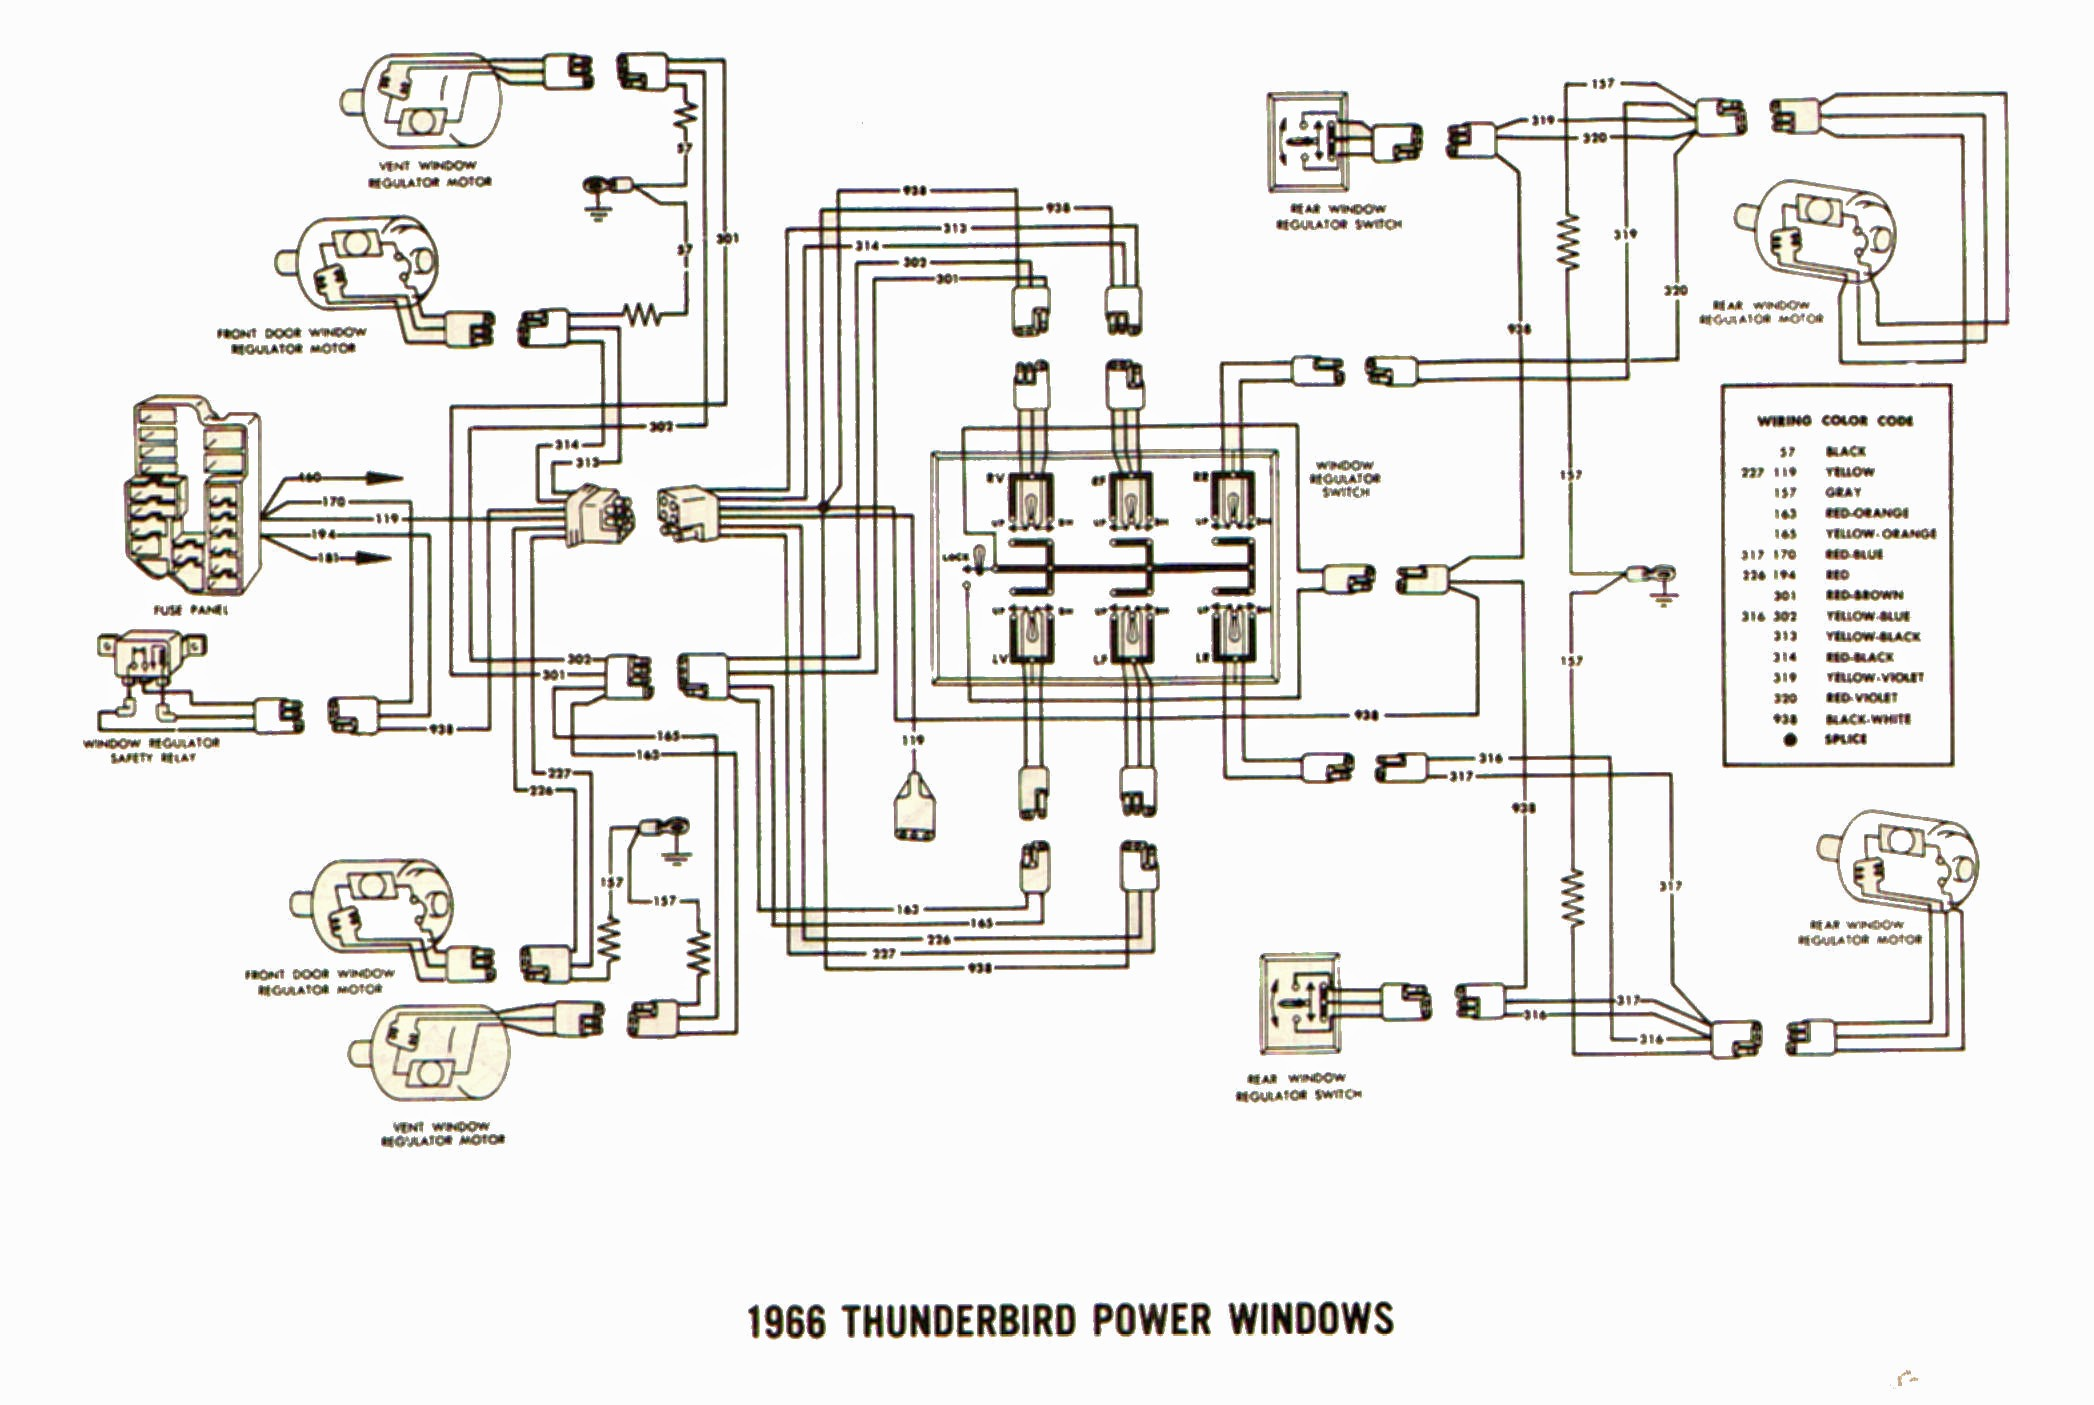 Electric Window Wiring Diagram Electrical Wiring Diagrams ford Explorer Window Wiring Diagram New Of Electric Window Wiring Diagram